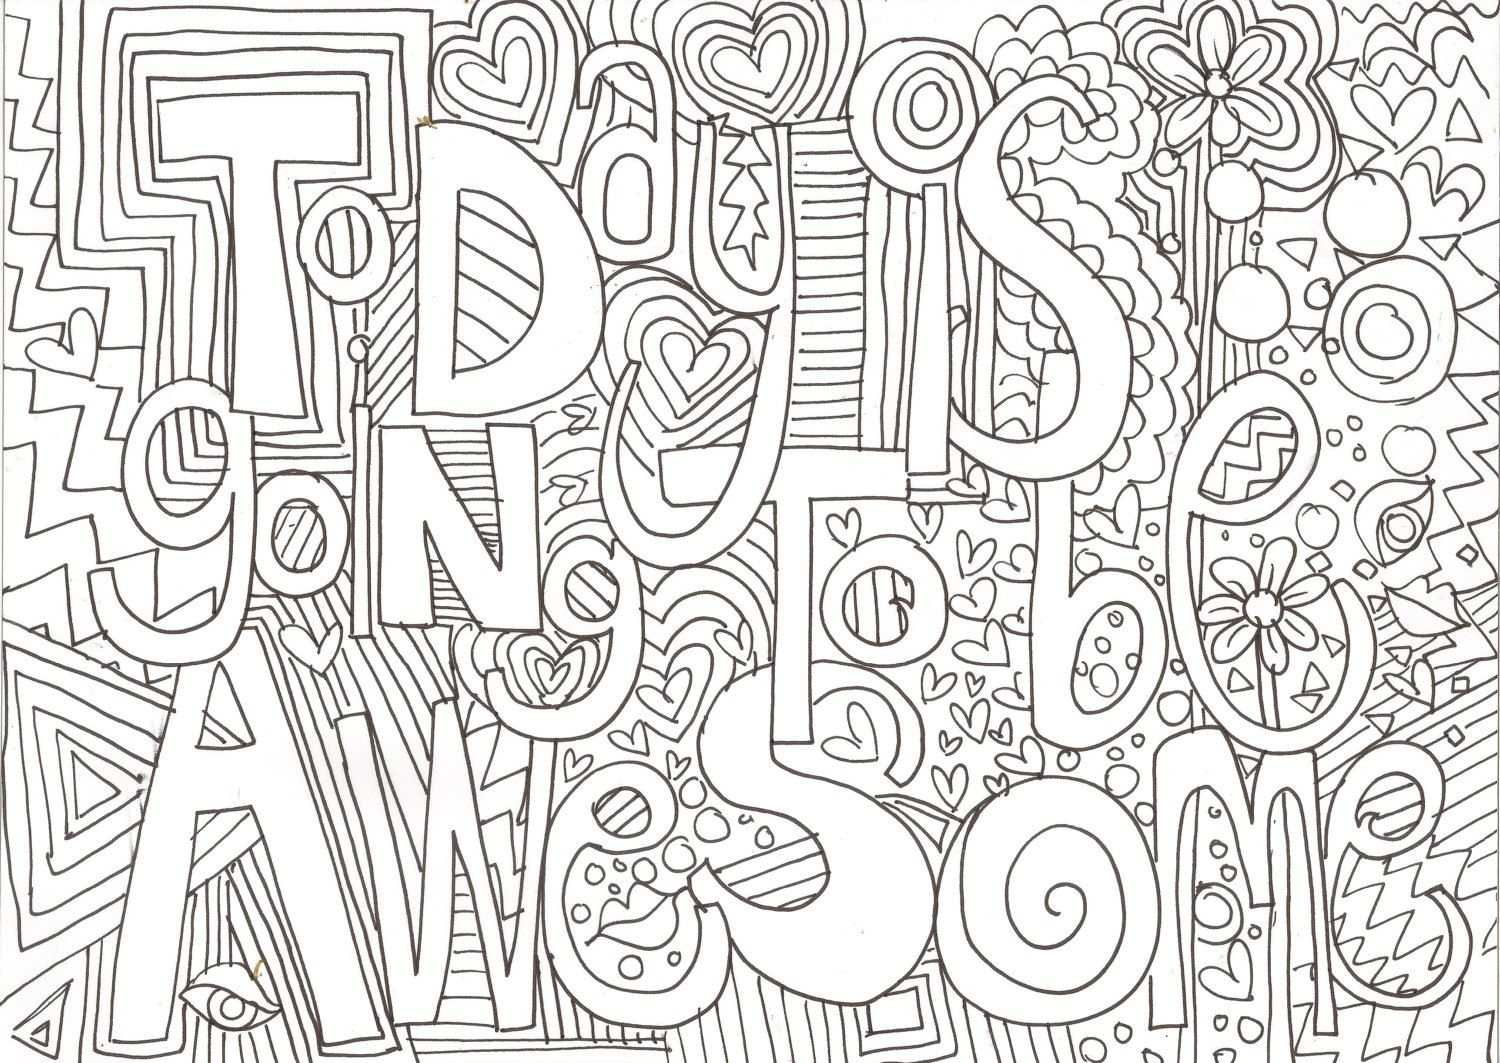 Colouring Page Today Is Going To Be Awesome By Polkadotty123 Coloring Books Coloring Pages Free Coloring Pages